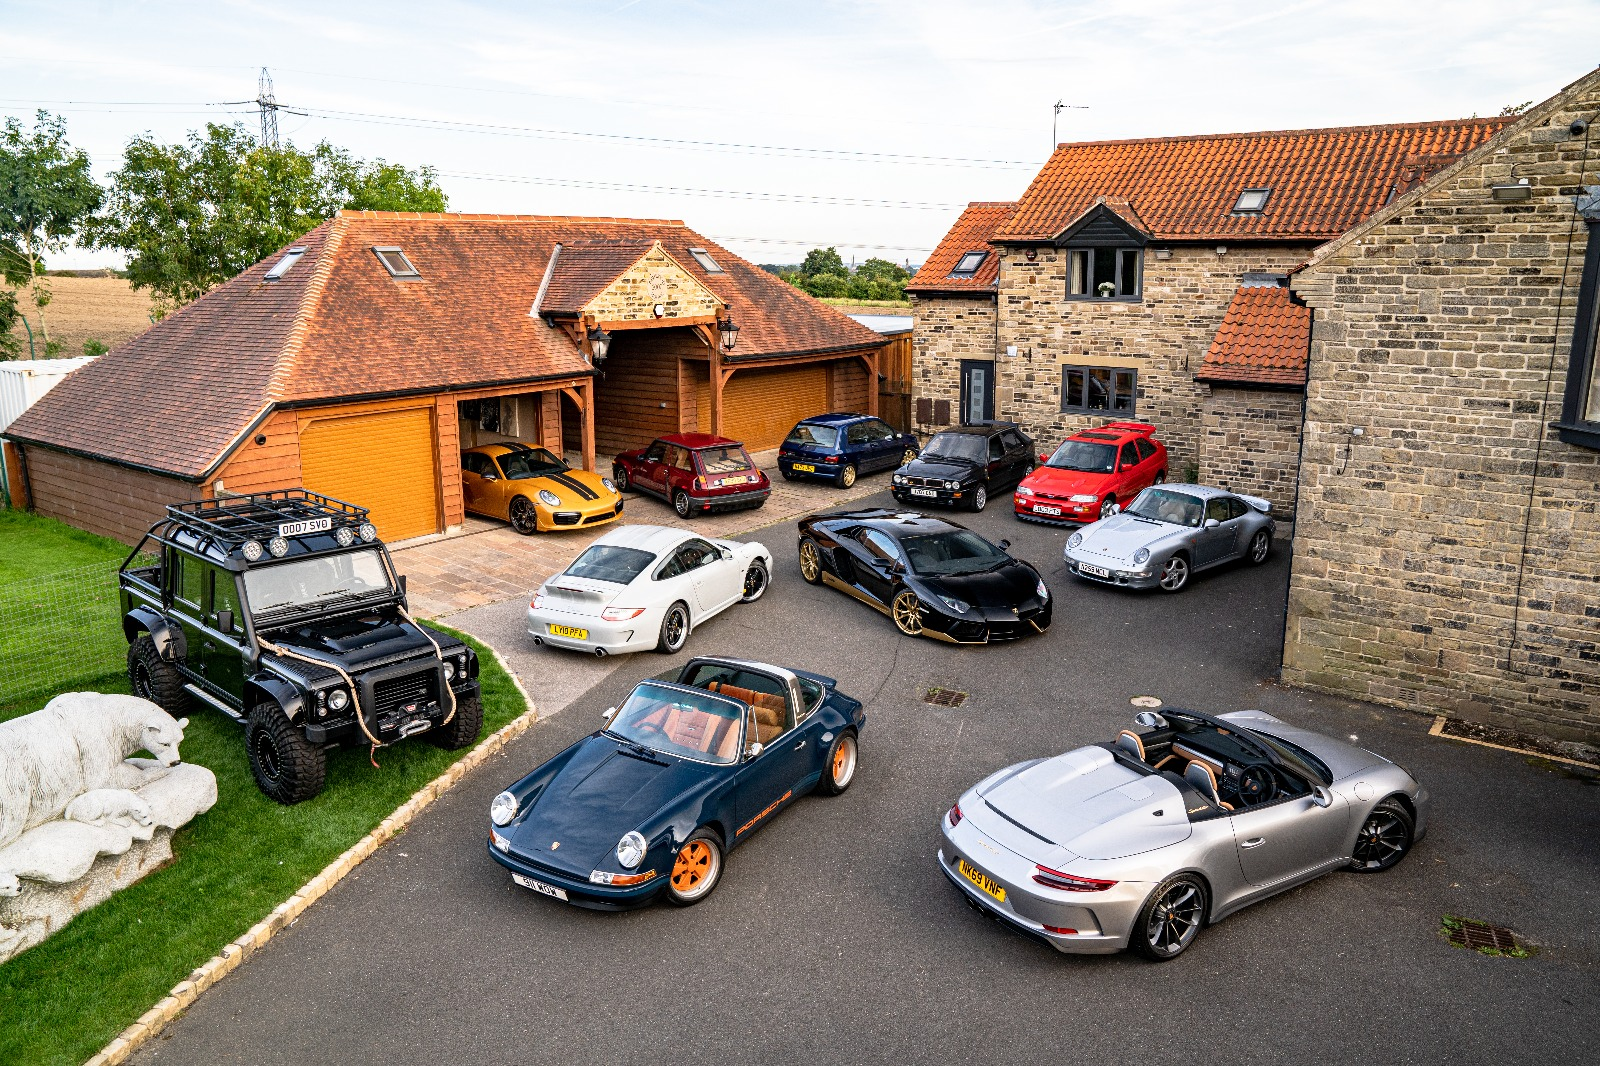 THE HESELDEN COLLECTION: LIVE ON COLLECTING CARS